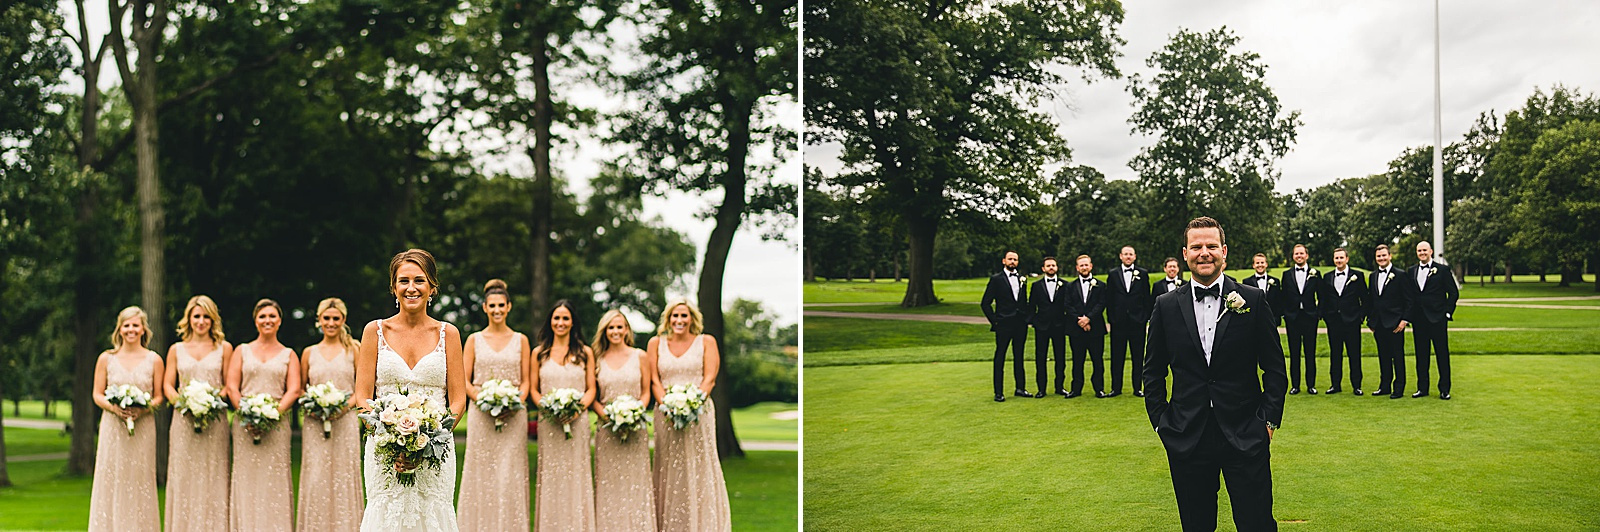 18 medinah wedding photographers